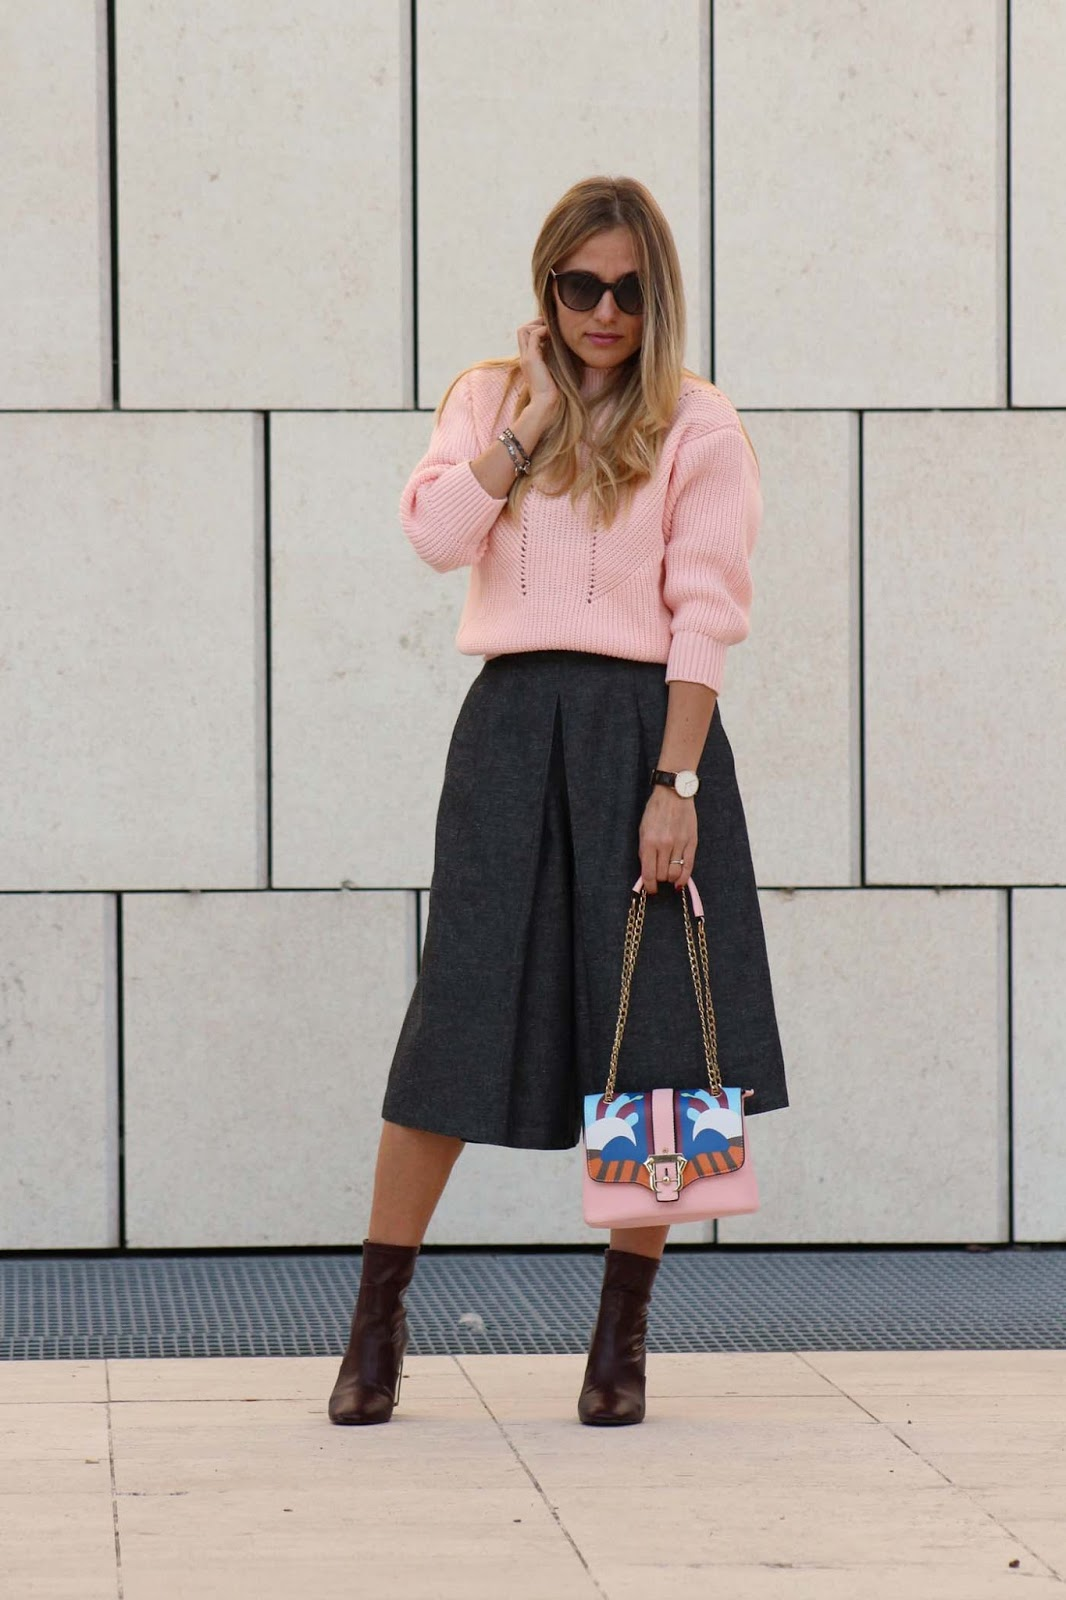 Eniwhere Fashion - Pink sweater - Zaful - Fall's outfit